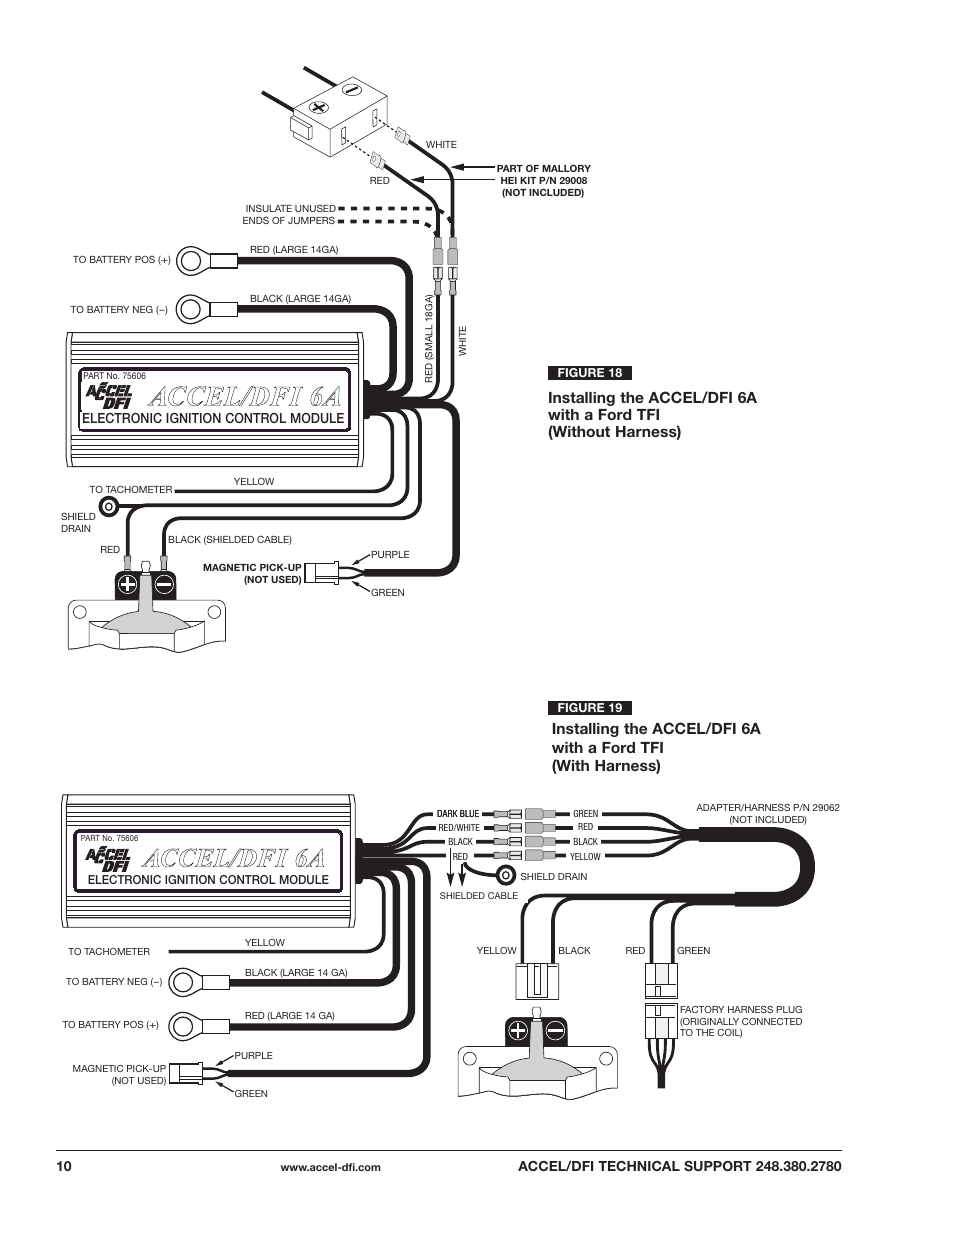 electronic ignition control module manual